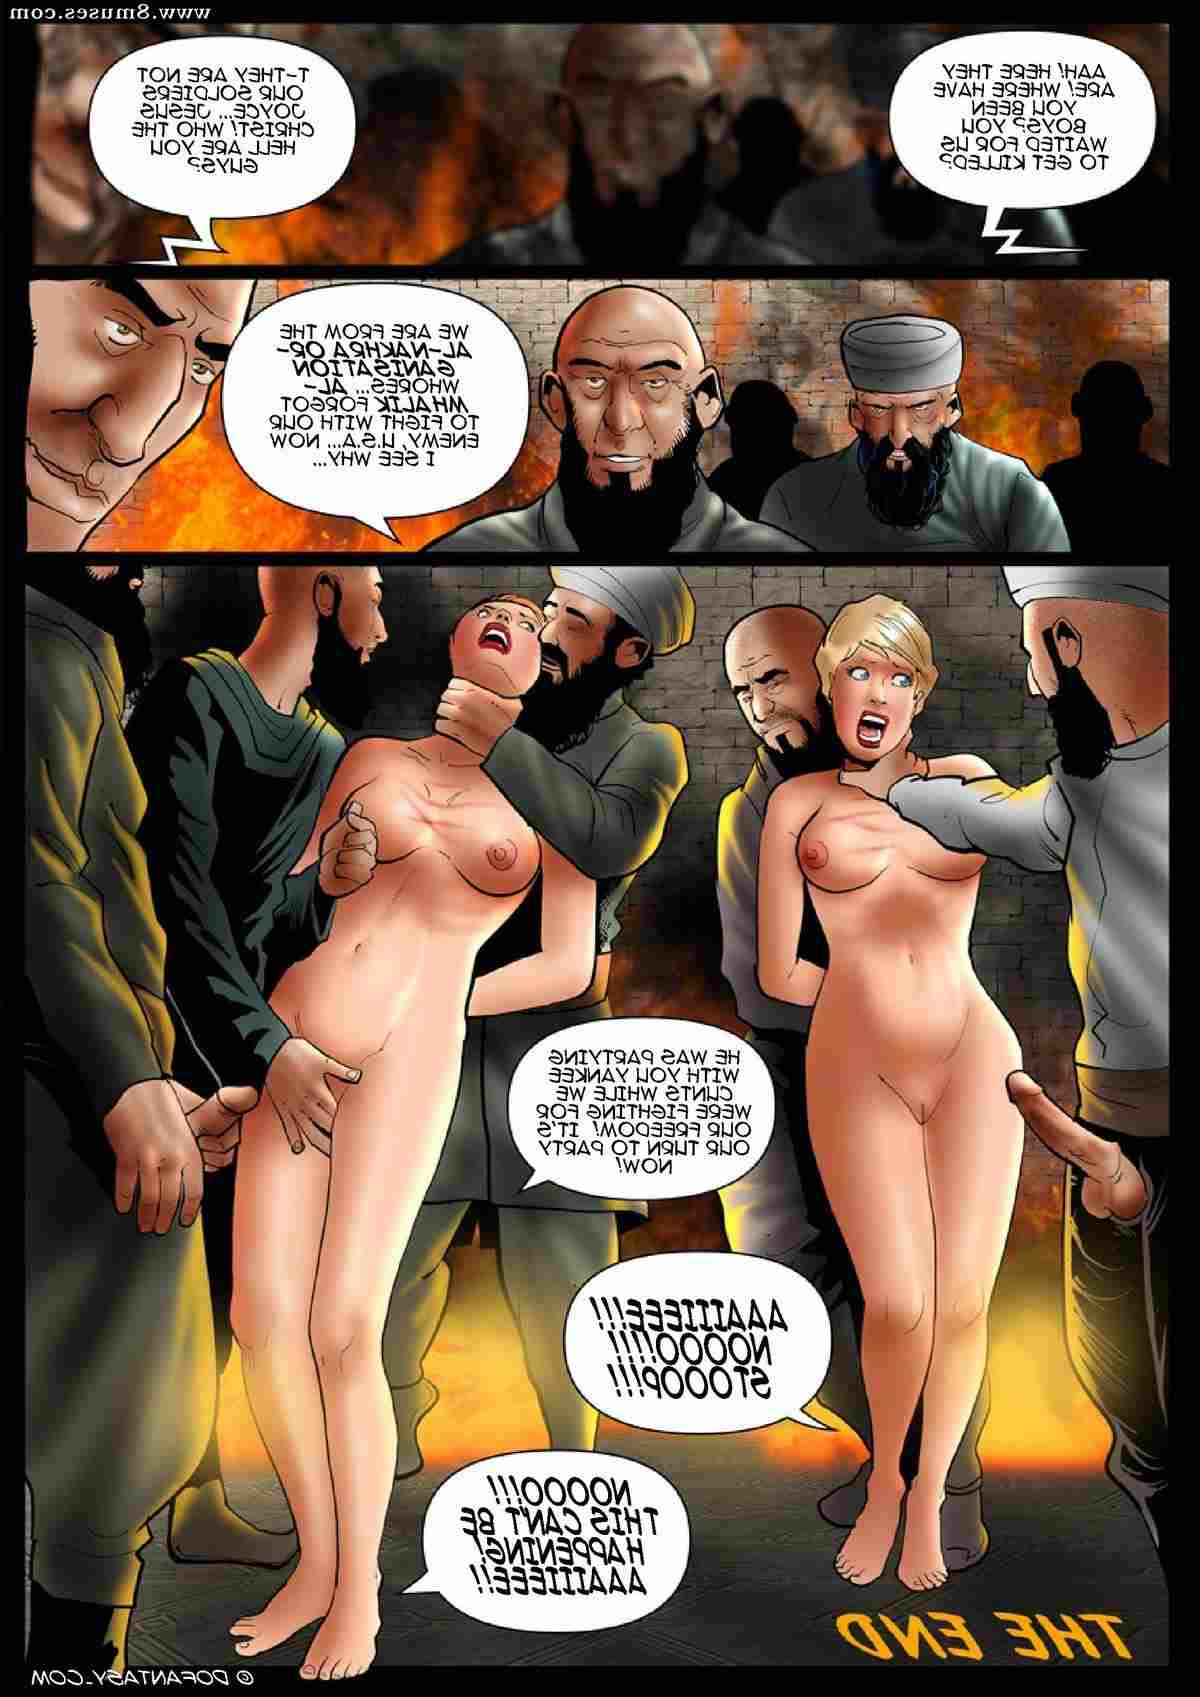 Fansadox-Comics/301-400/Fansadox-369-The-Pows Fansadox_369_-_The_Pows__8muses_-_Sex_and_Porn_Comics_43.jpg